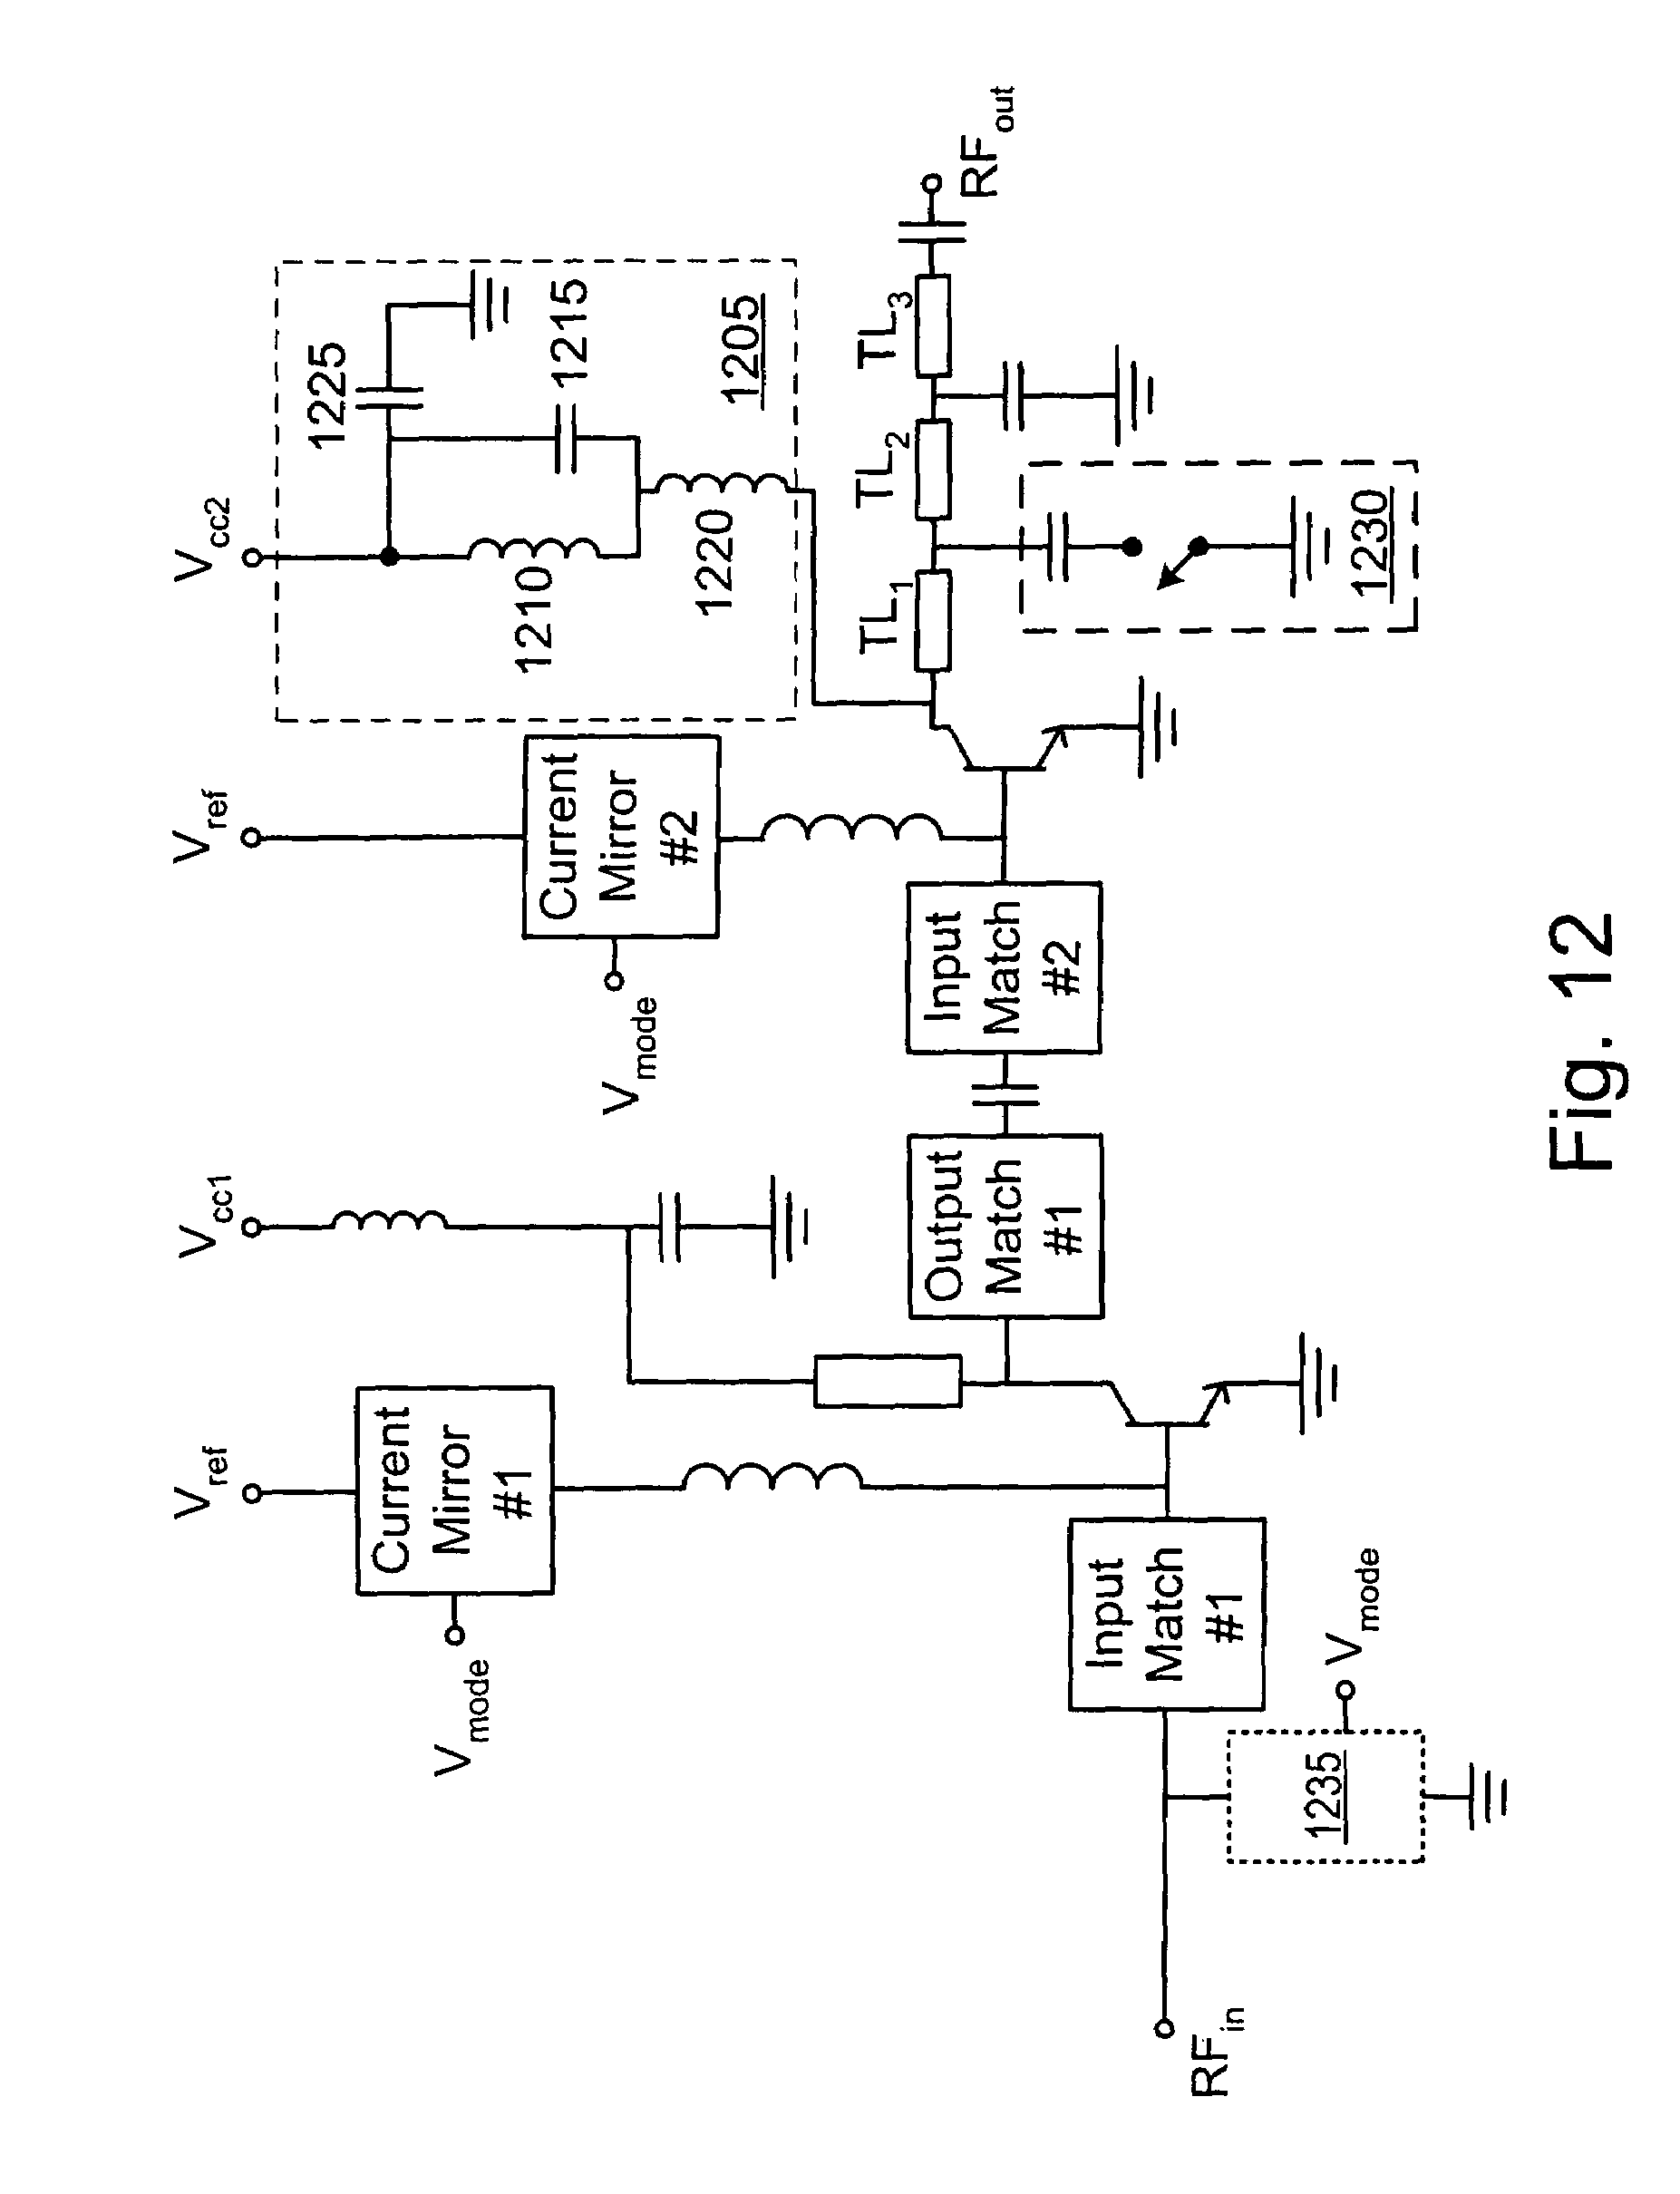 Patent Us7443236 Cdma Power Amplifier Design For Low And High Analog Isolation Circuit Amplifiercircuit Diagram Drawing